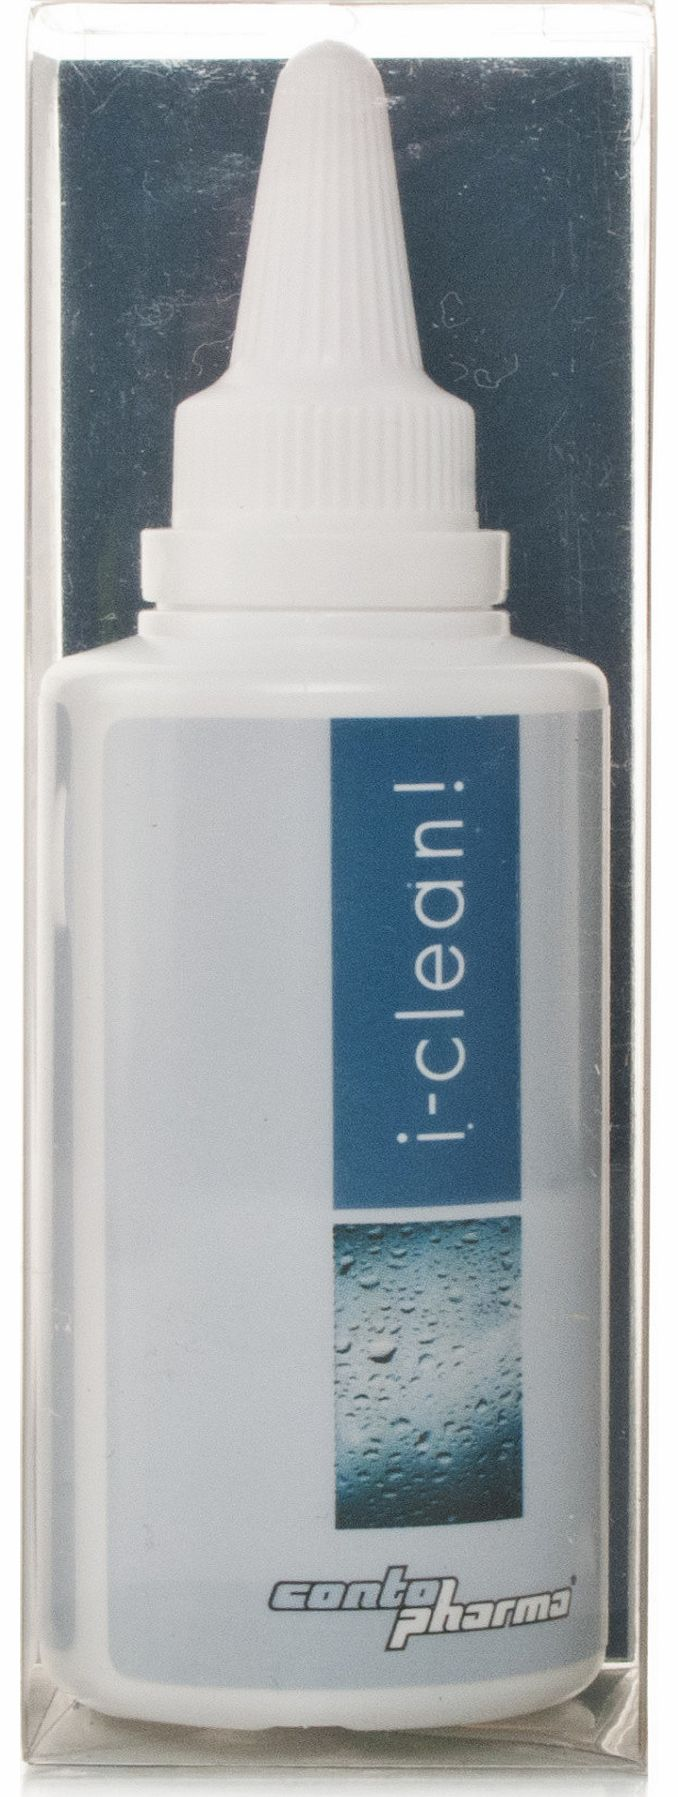 i-clean Daily Cleaner is the ideal non-abrasive daily cleaning solution for both RGP and soft contact lenses.The aqueous-alcoholic surfactant system in i-clean is the optimal formula for removing protein deposits from cell membranes adhering to the s